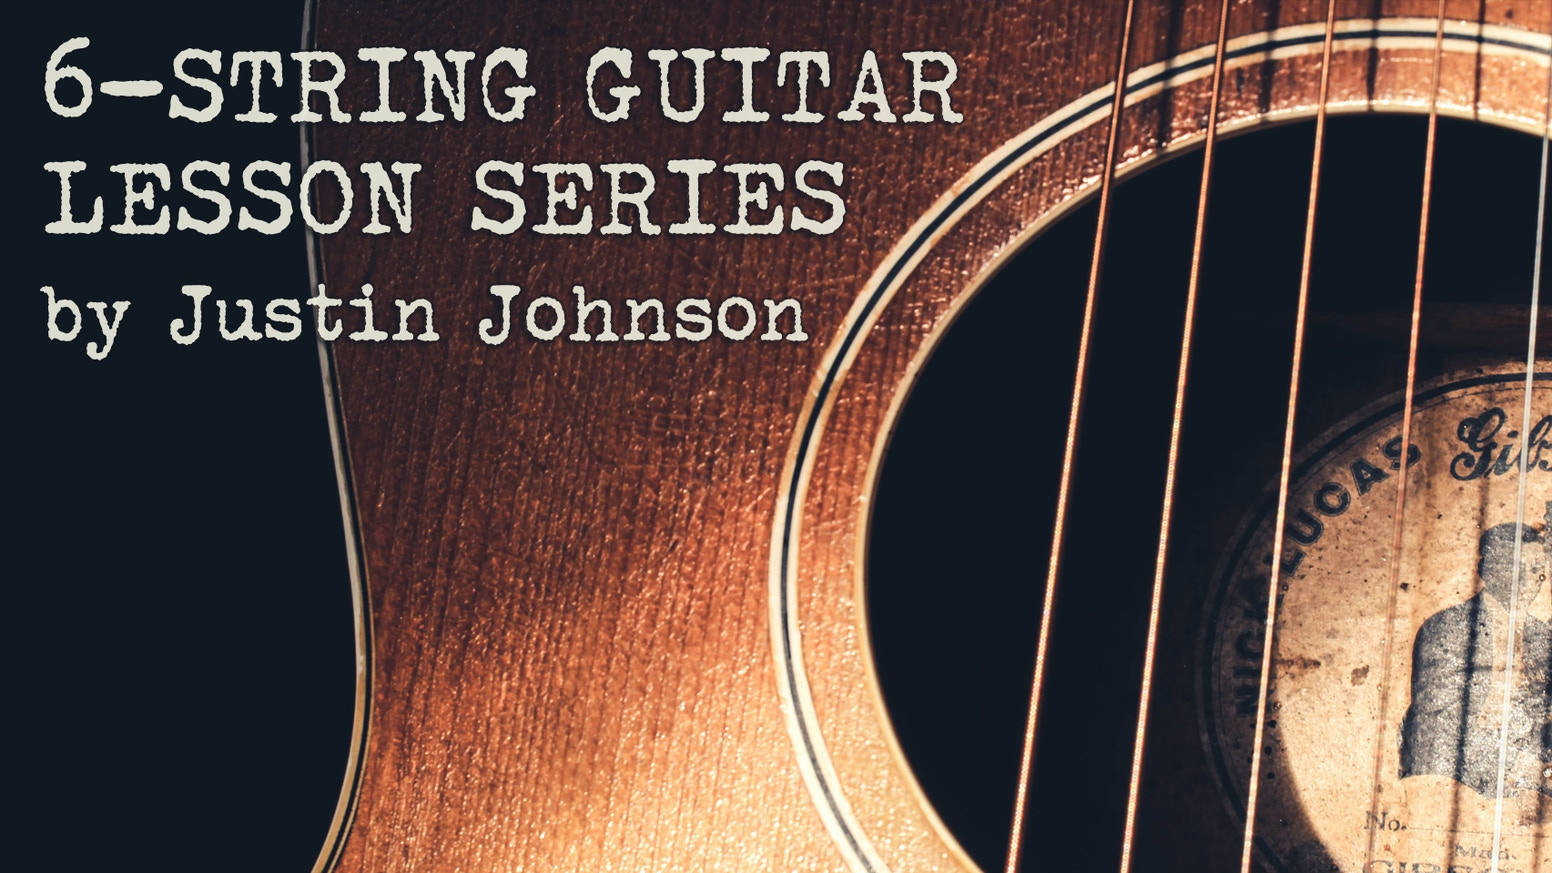 6-String Guitar! Full Instructional Series by Justin Johnson